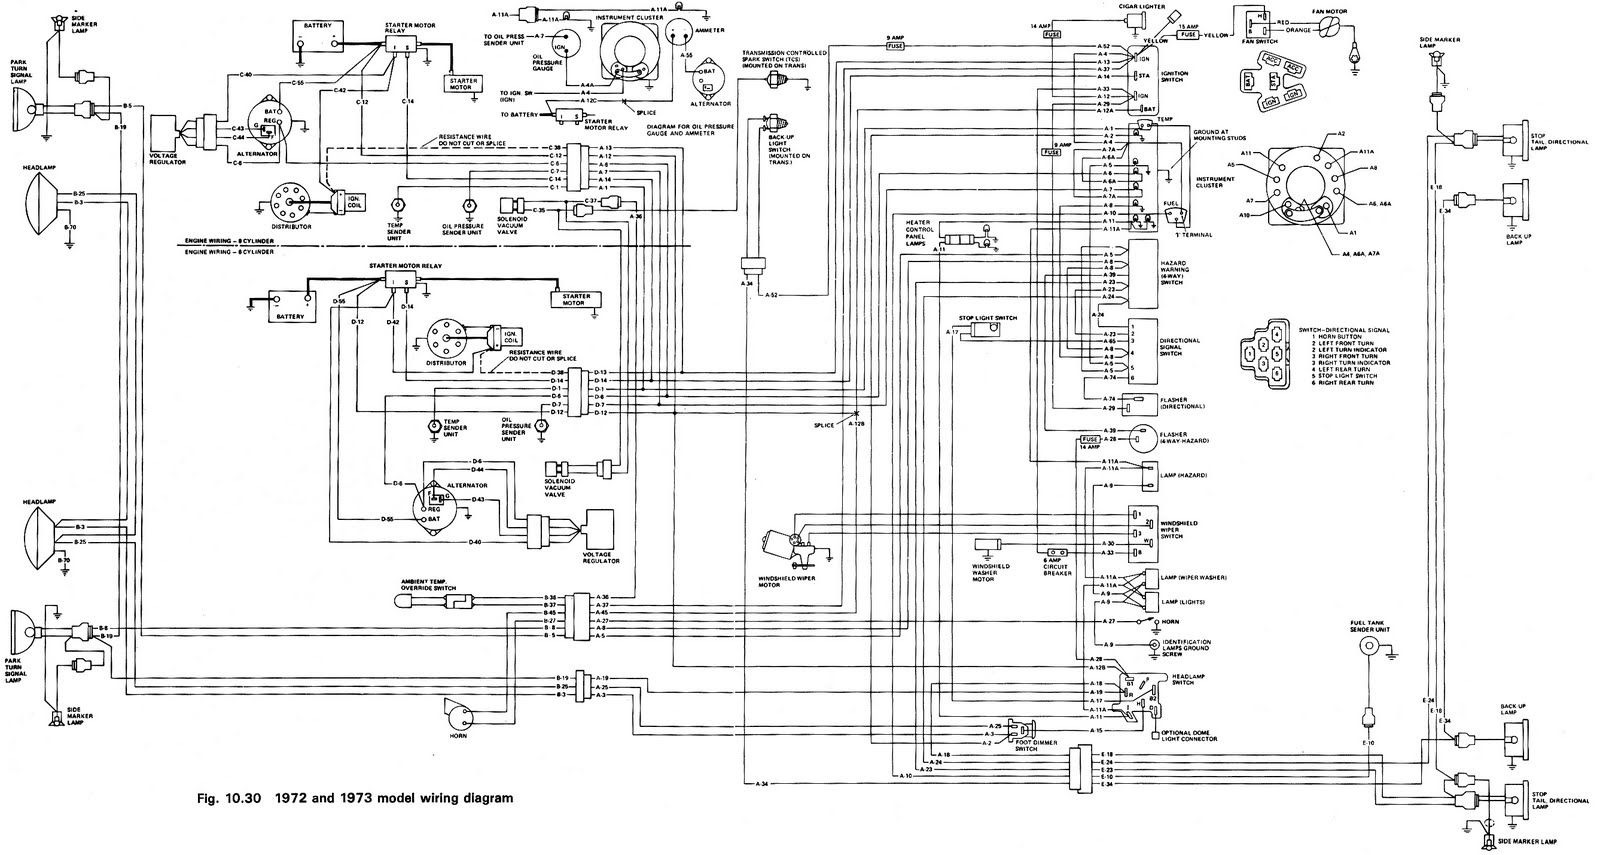 74 jeep cj5 wiring diagram  74  free engine image for user 1976 CJ5 Wiring-Diagram 1974 CJ5 Wiring-Diagram